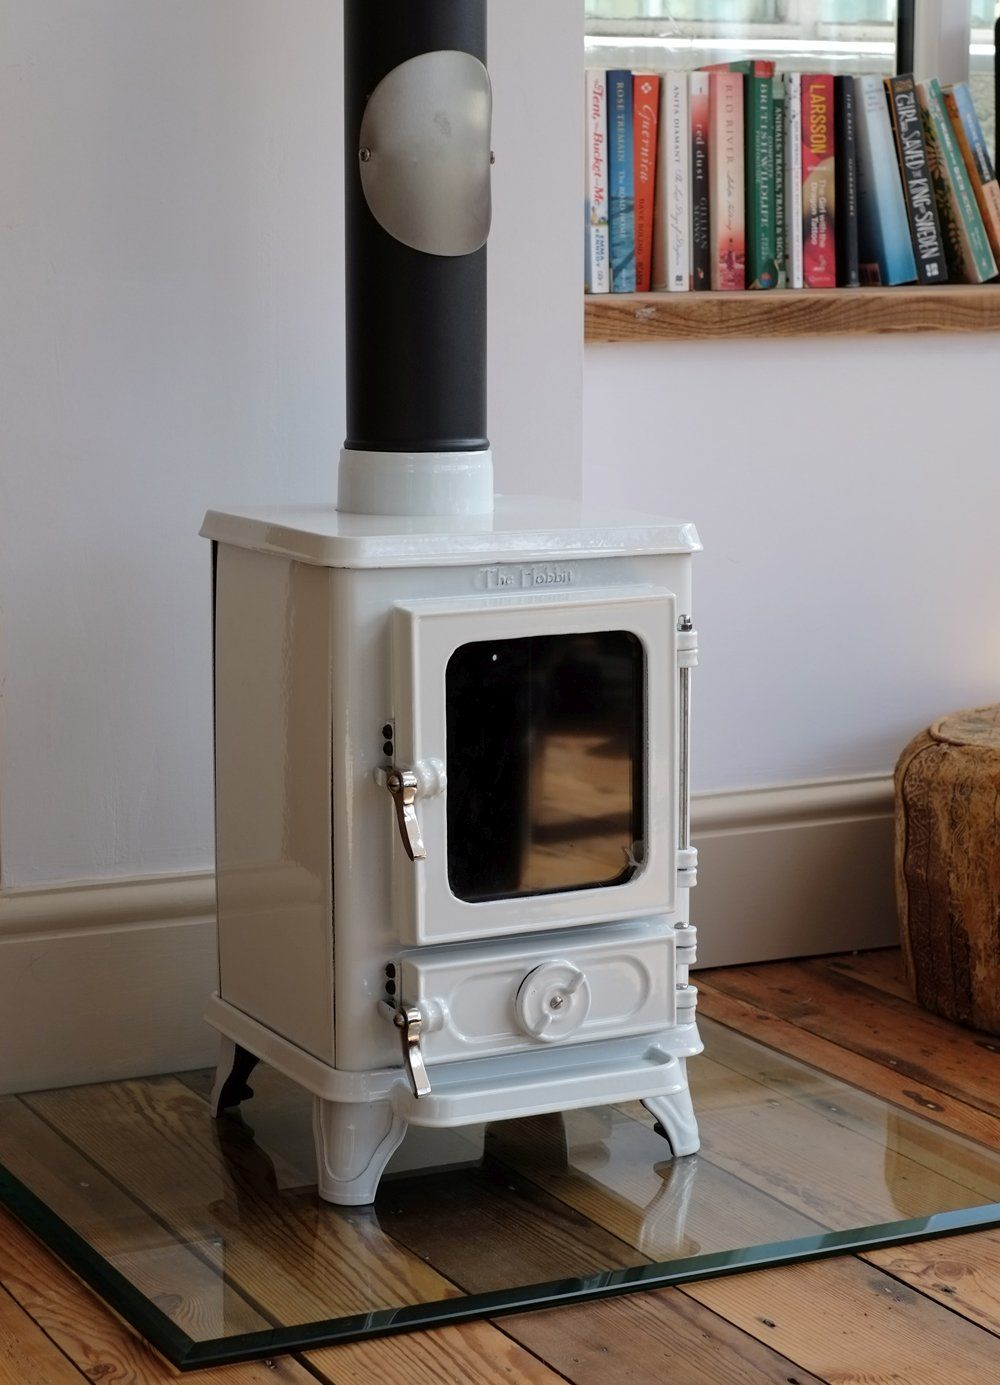 The Hobbit Stove Home Wood Stove Hearth Multi Fuel